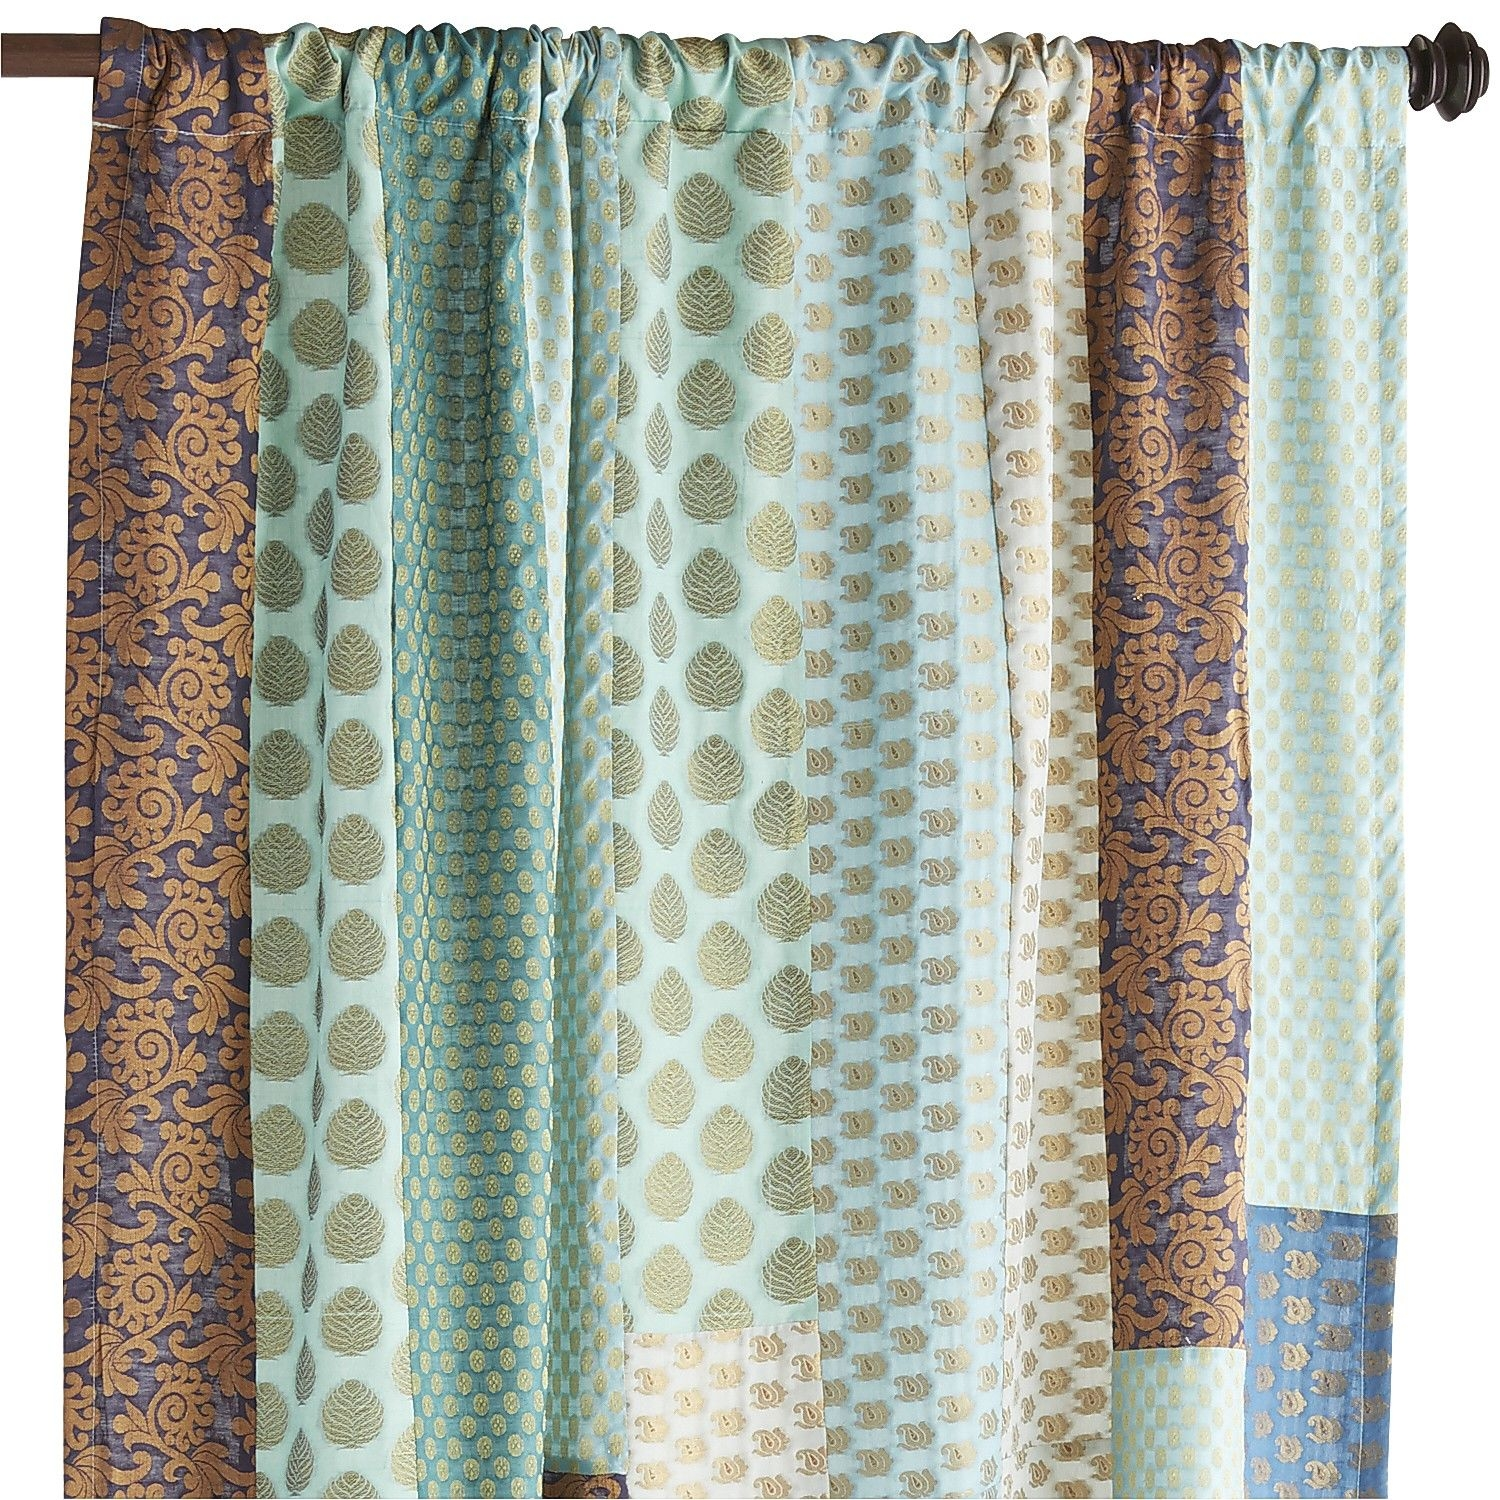 Curtains Exciting 96 Inch Curtains For Home Decoration Ideas Intended For 63 Inches Long Curtains (Image 11 of 25)